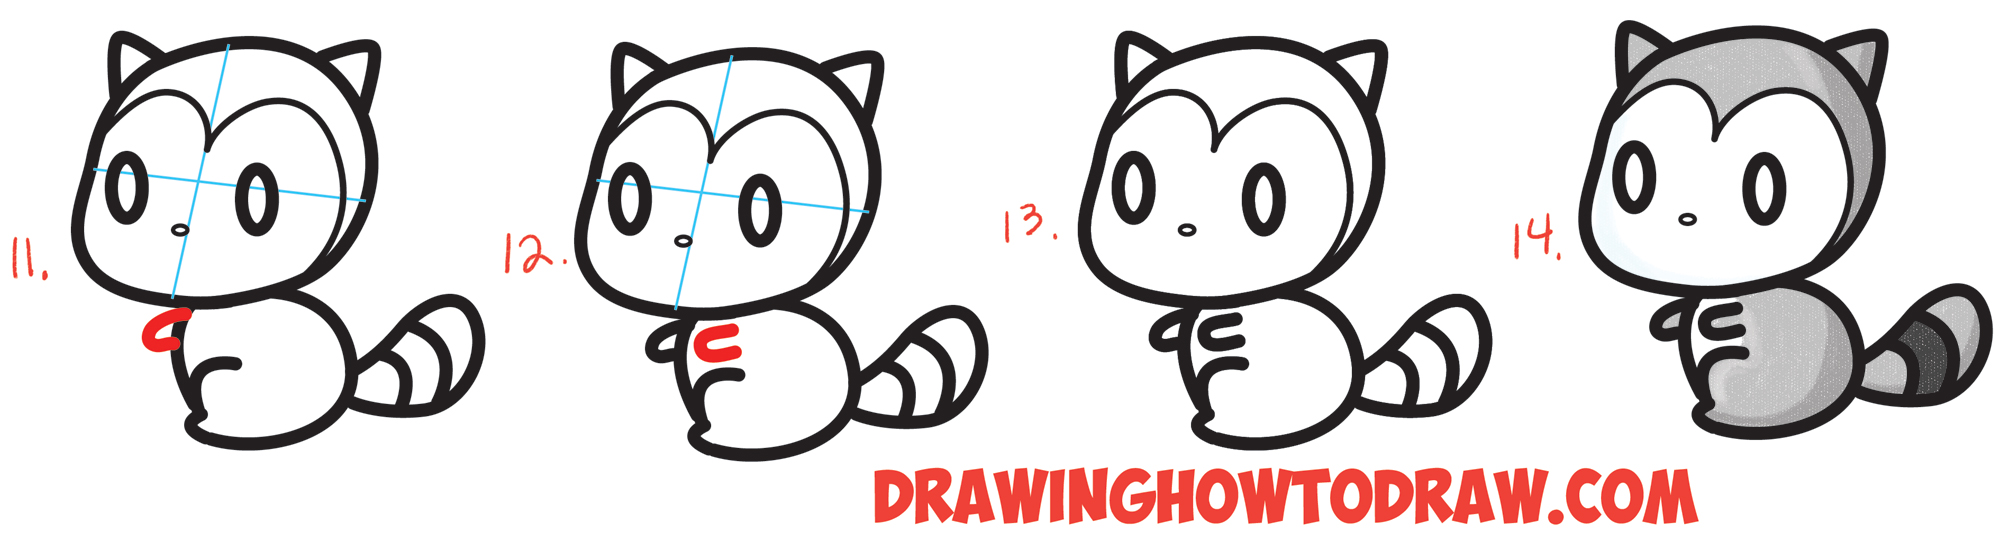 How to Draw a Cute Chibi / Kawaii Cartoon #3 Shape Racoon